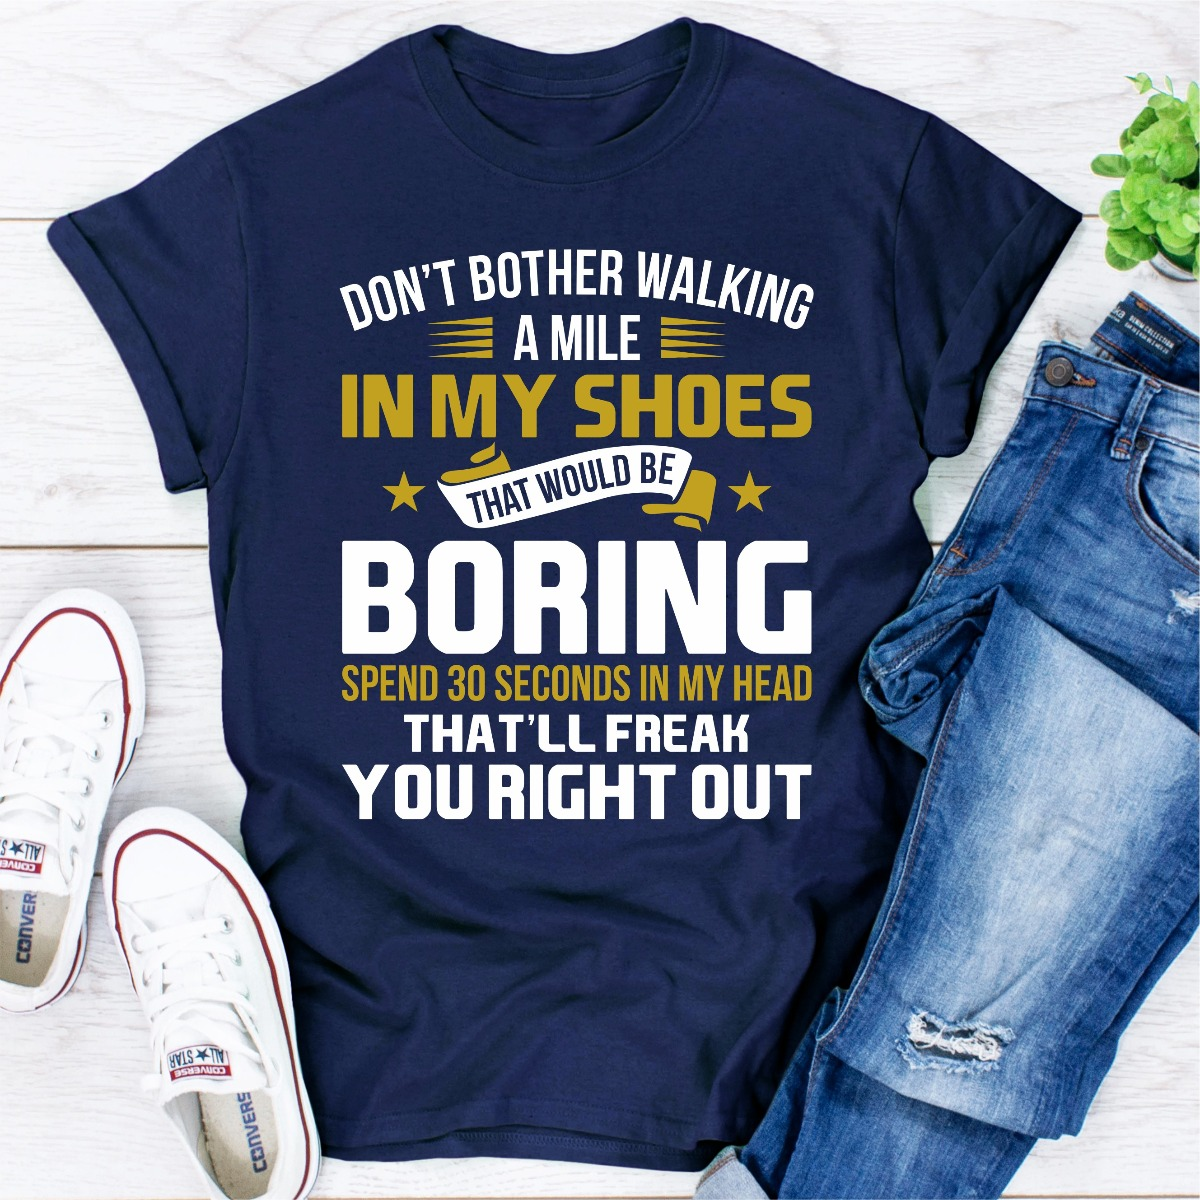 Don't Bother Walking A Mile In My Shoes (Navy / 2Xl)